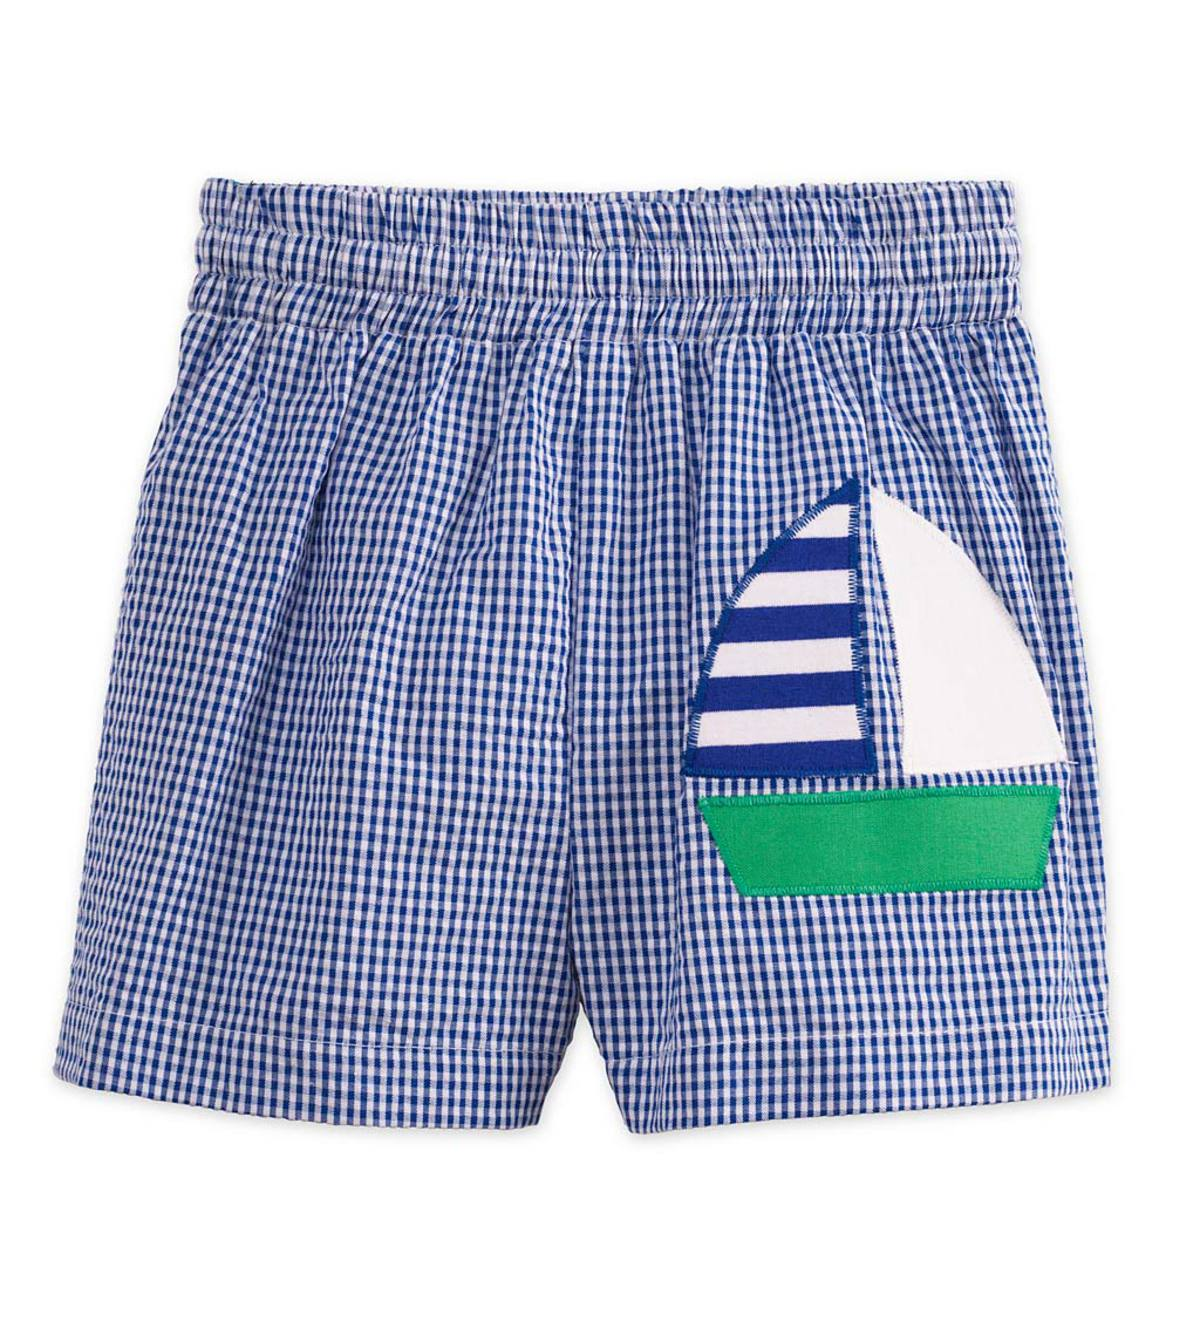 Sailboat Trunks